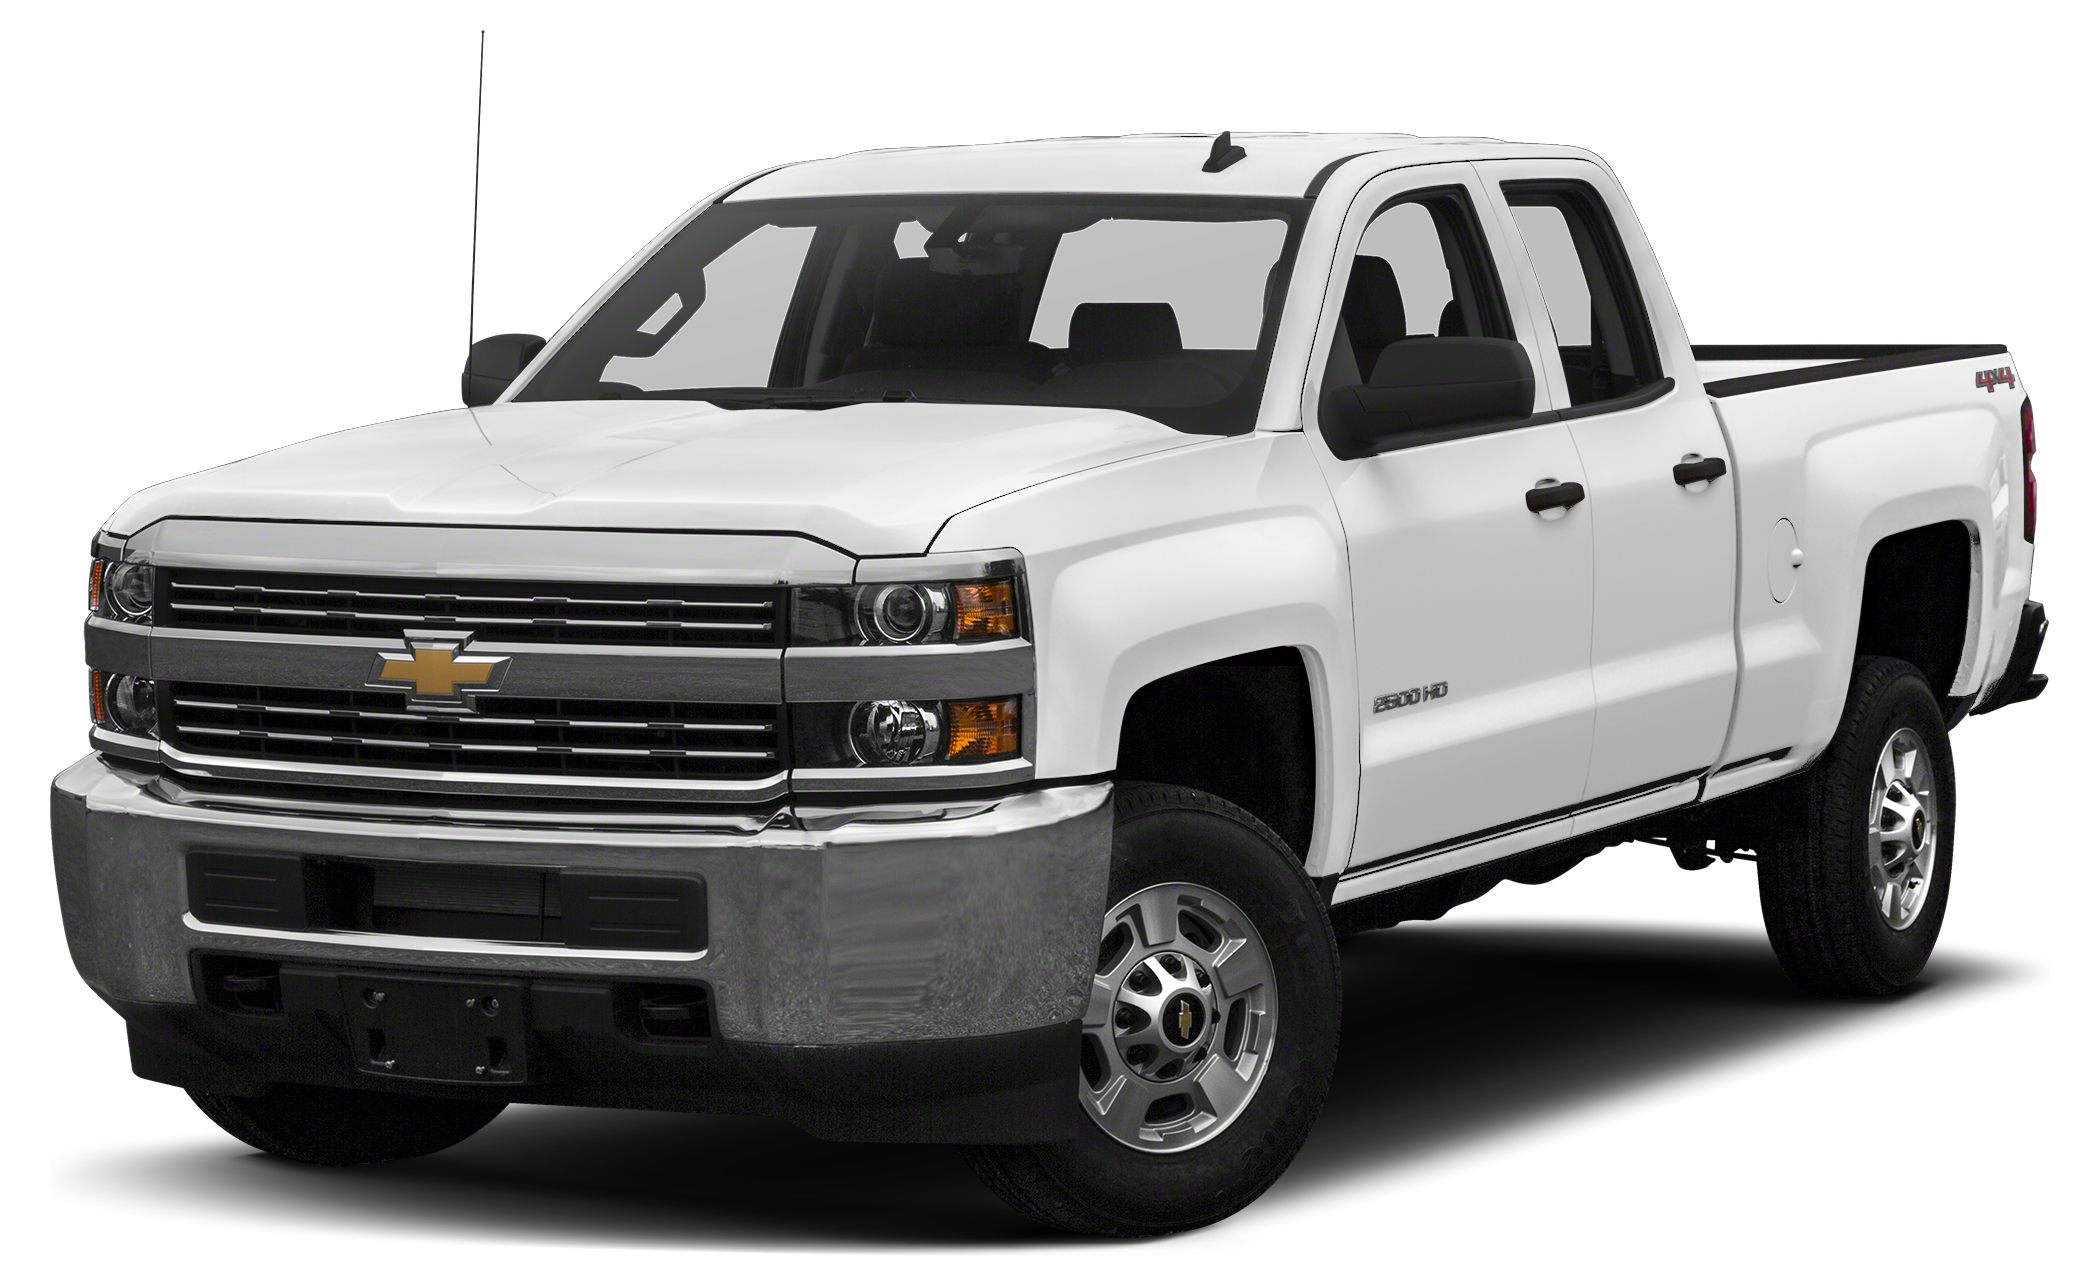 2015 Chevrolet Silverado 2500HD LT Summit White exterior and Cloth Jet Black Interior Trim inter